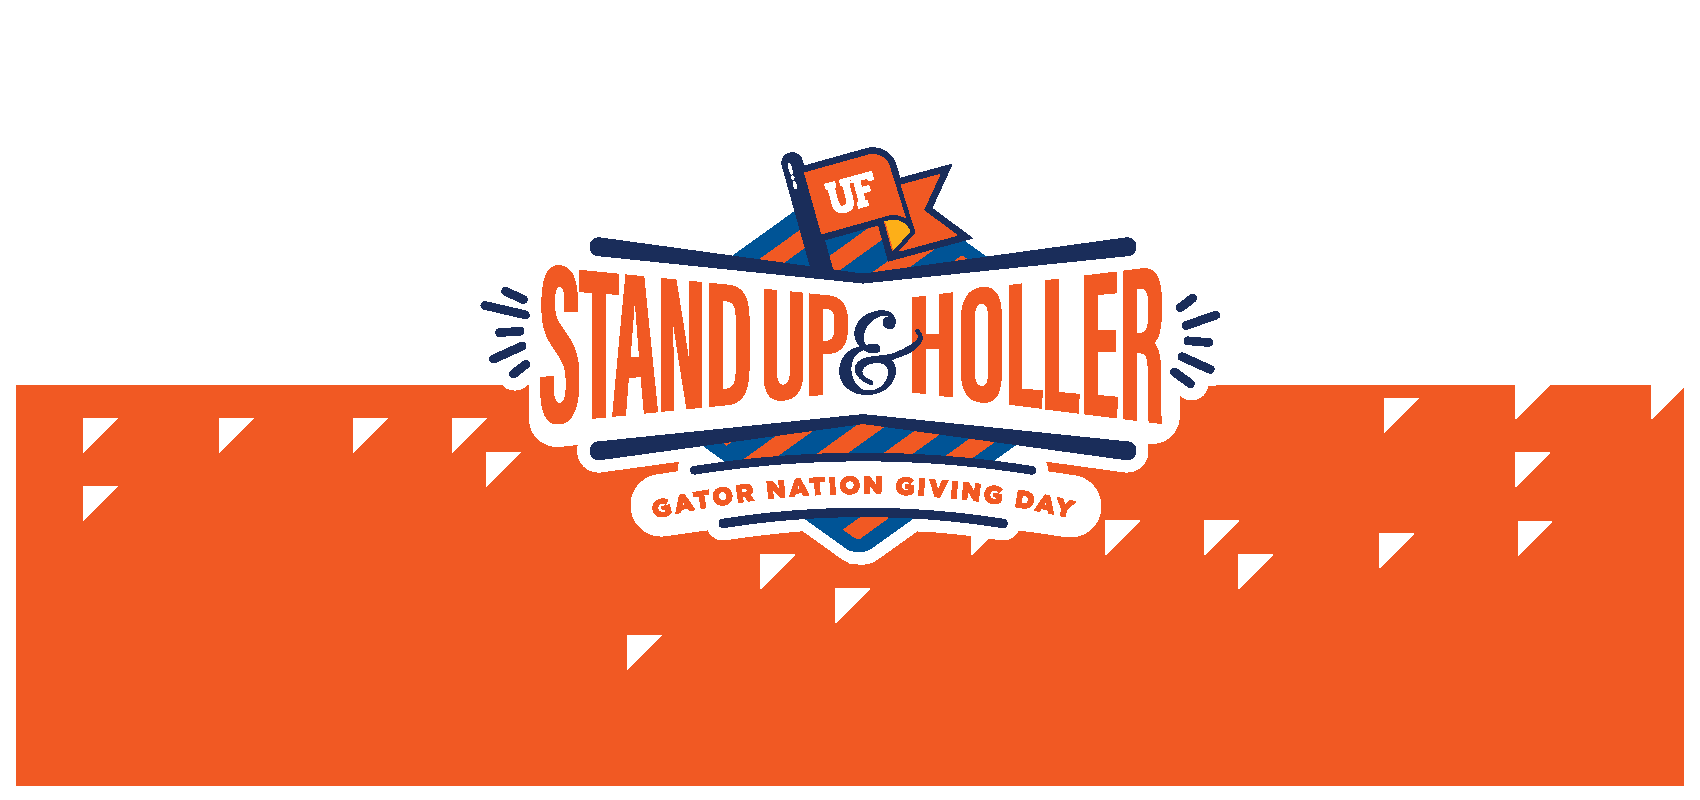 Gator Nation Giving Day